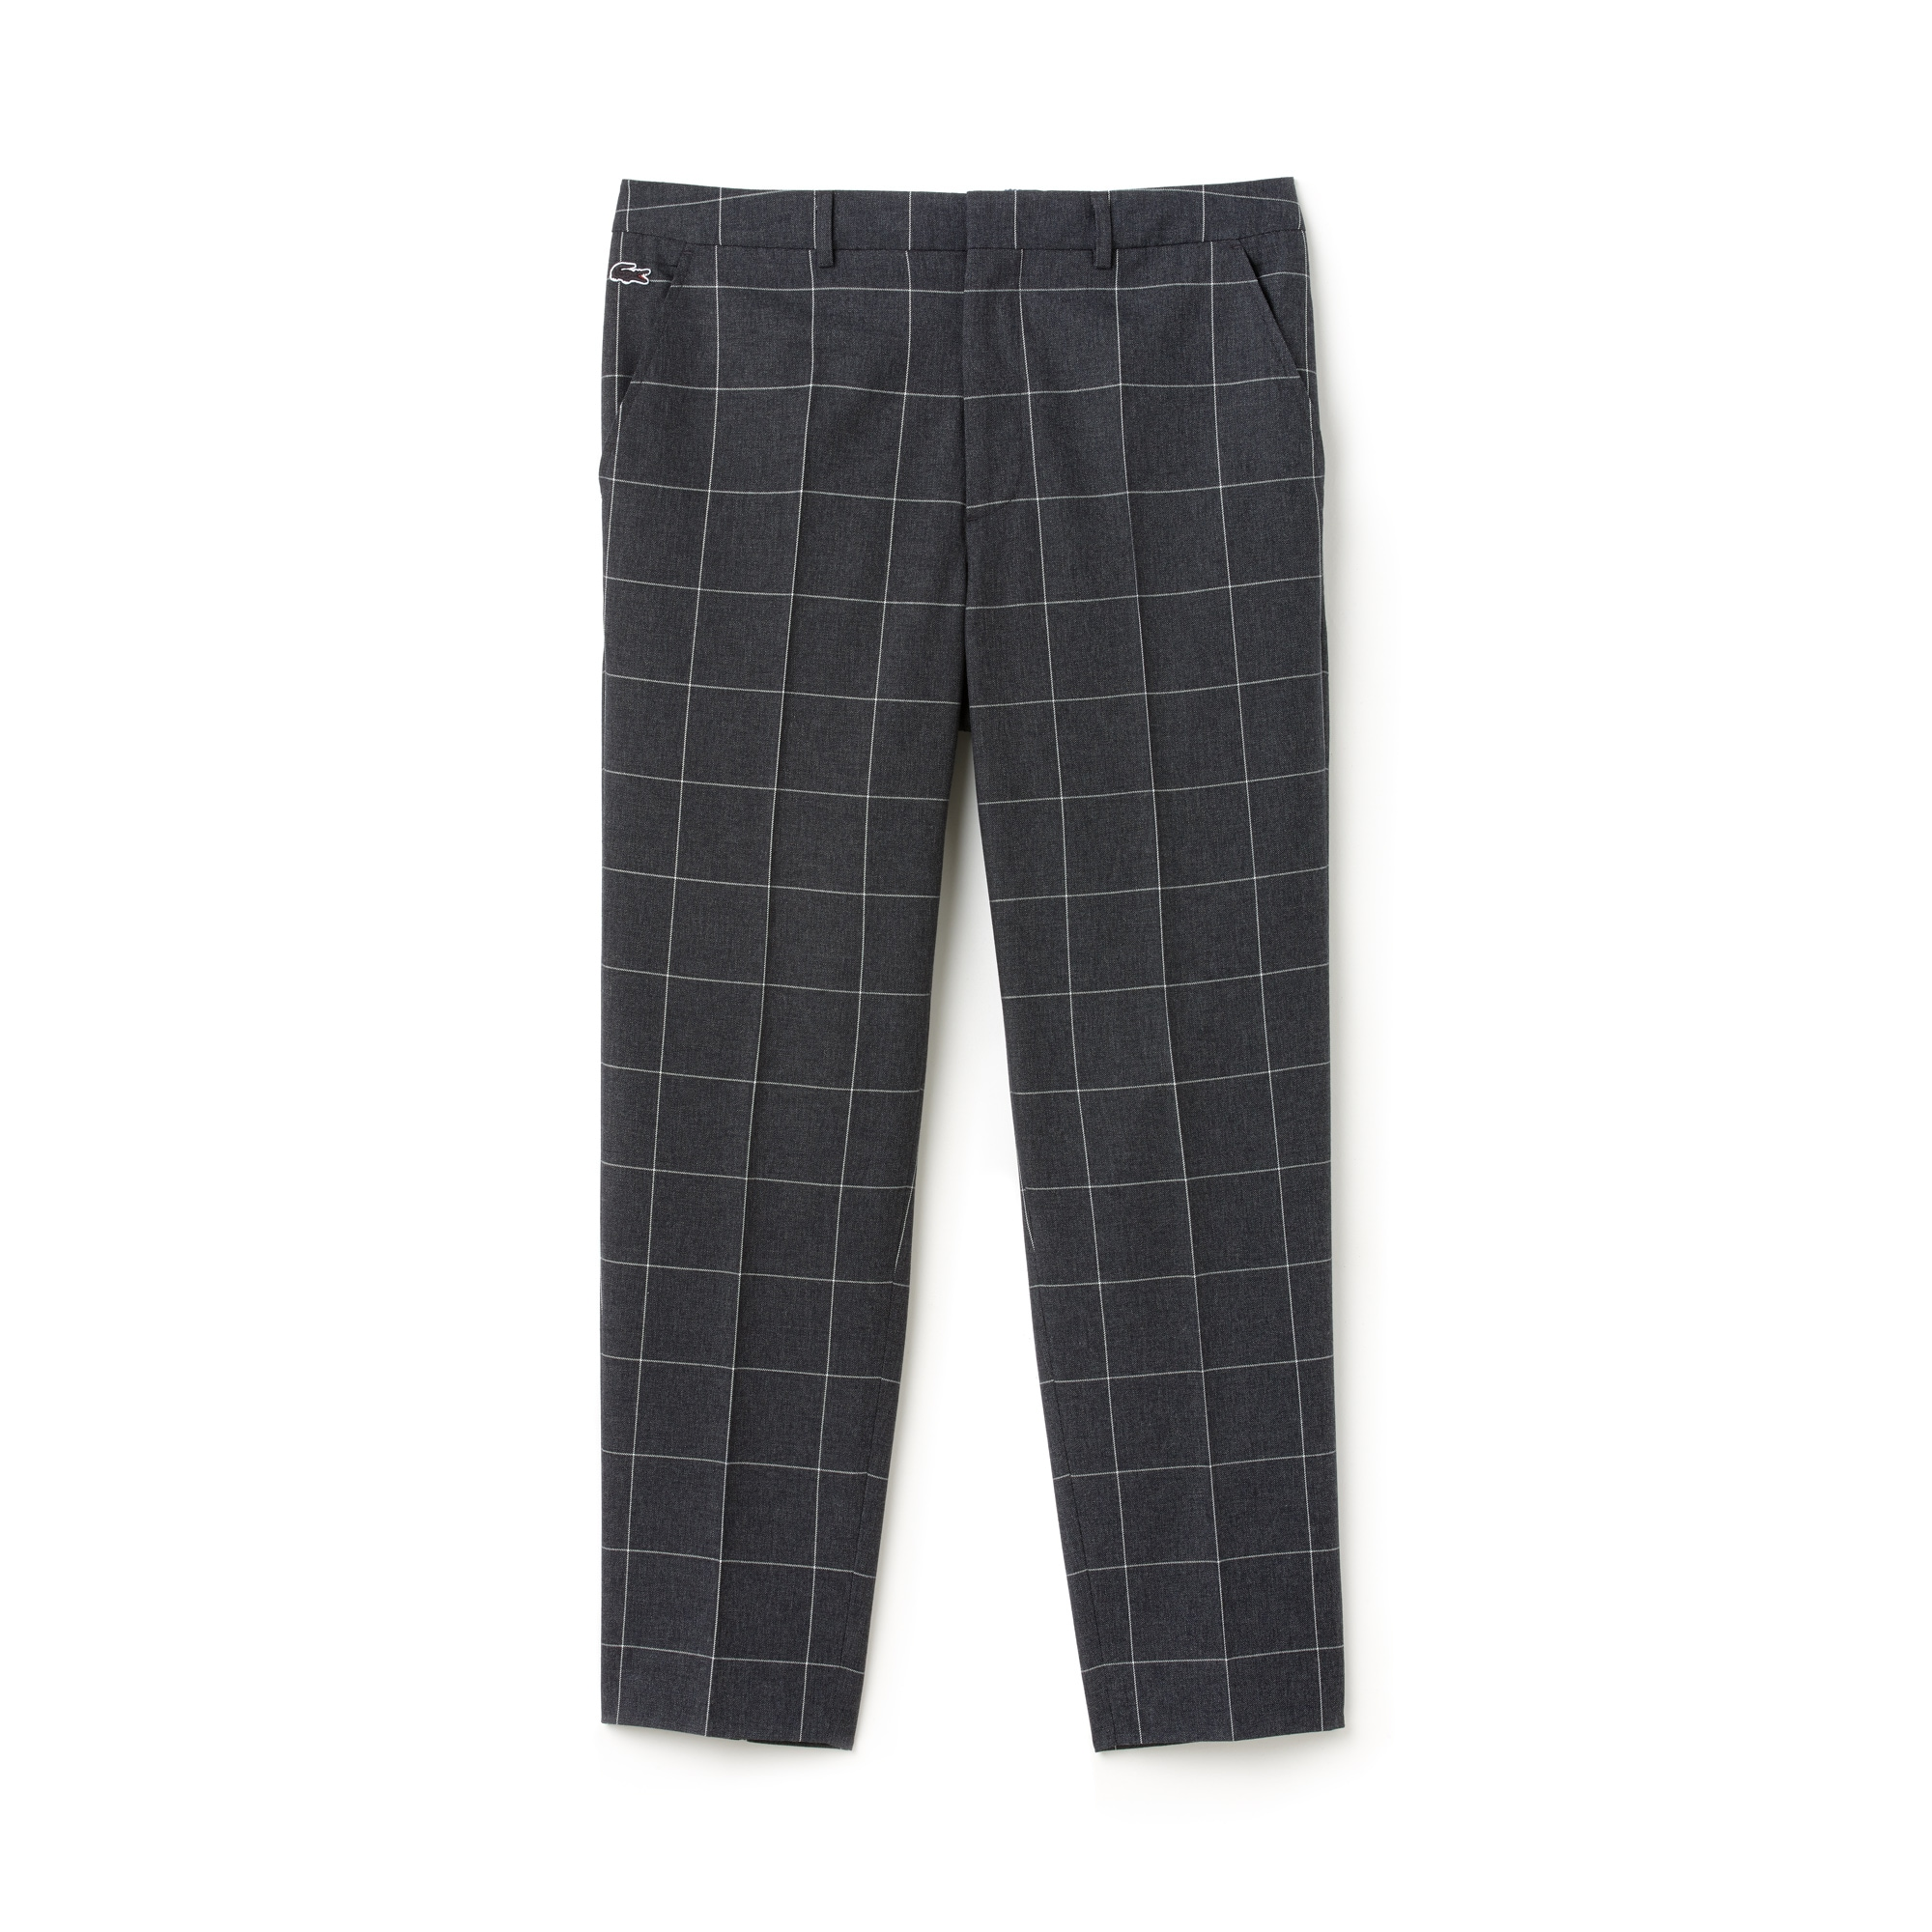 Men's Lacoste LIVE Check Flannel Chino Pants